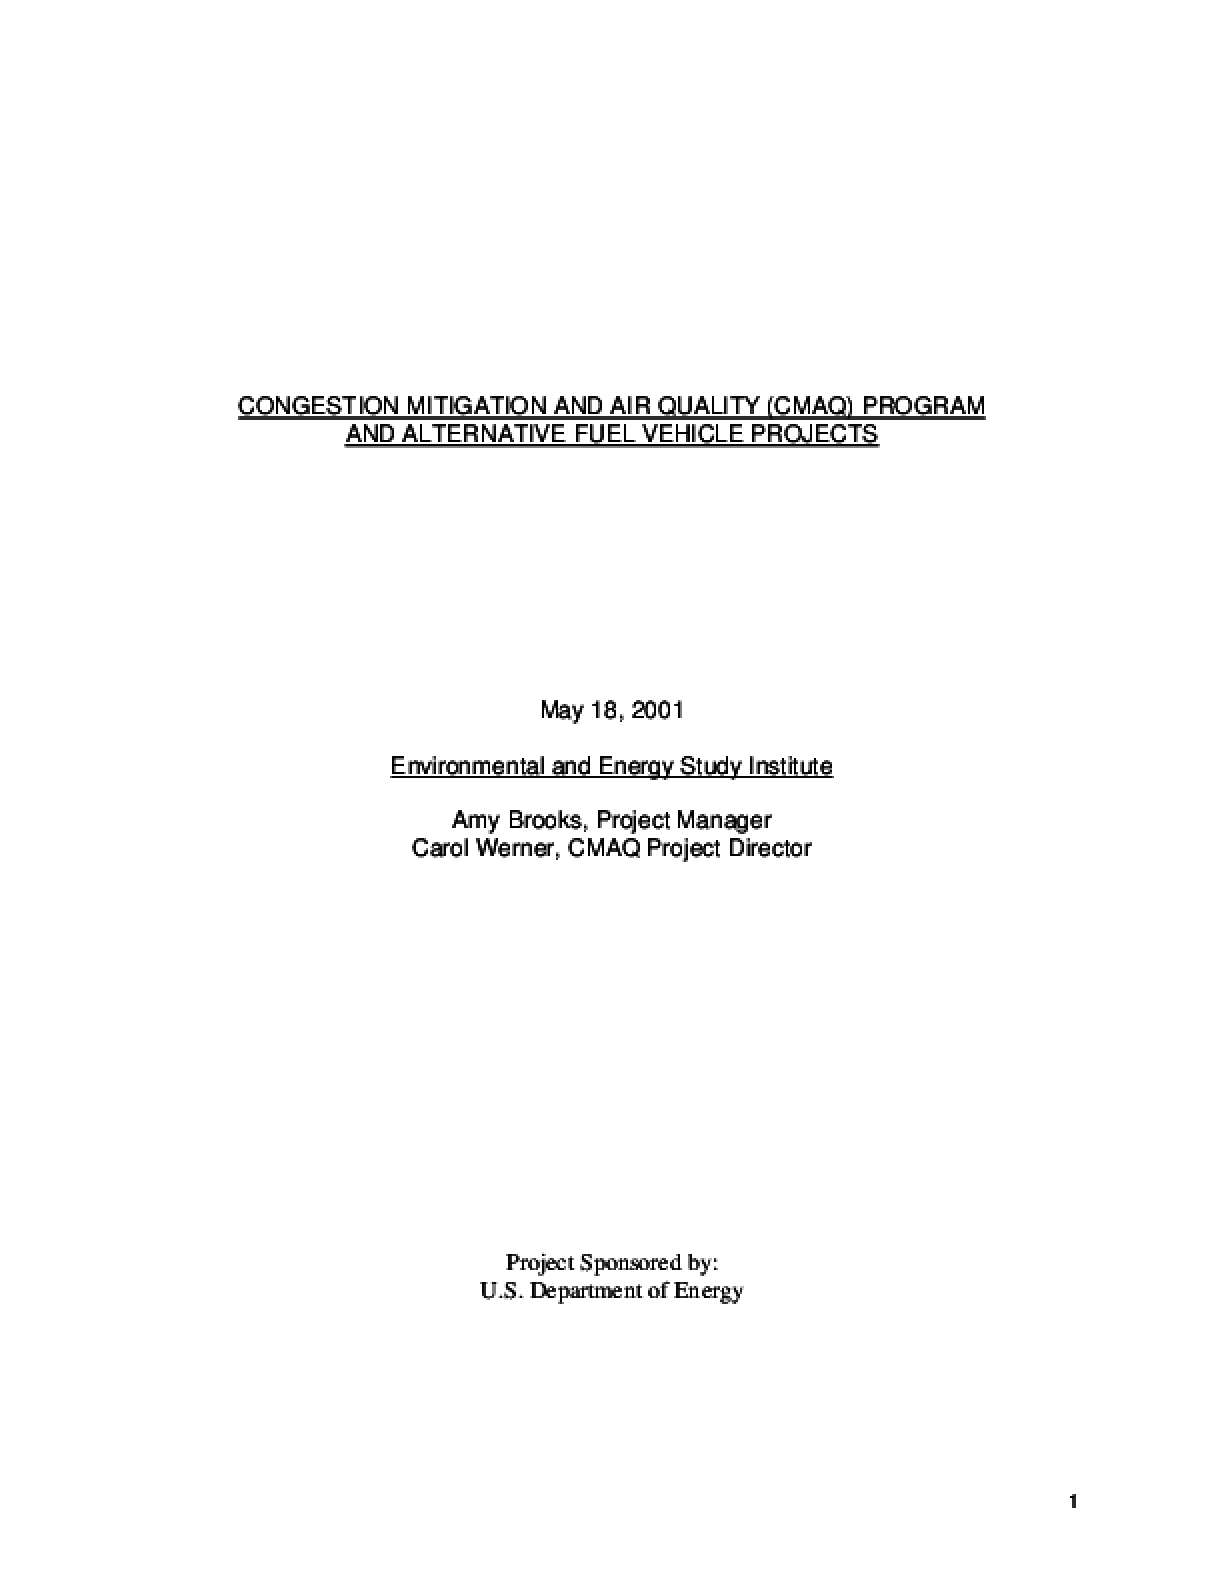 Congestion Mitigation and Air Quality (CMAQ) Program and Alternative Fuel Vehicle Projects